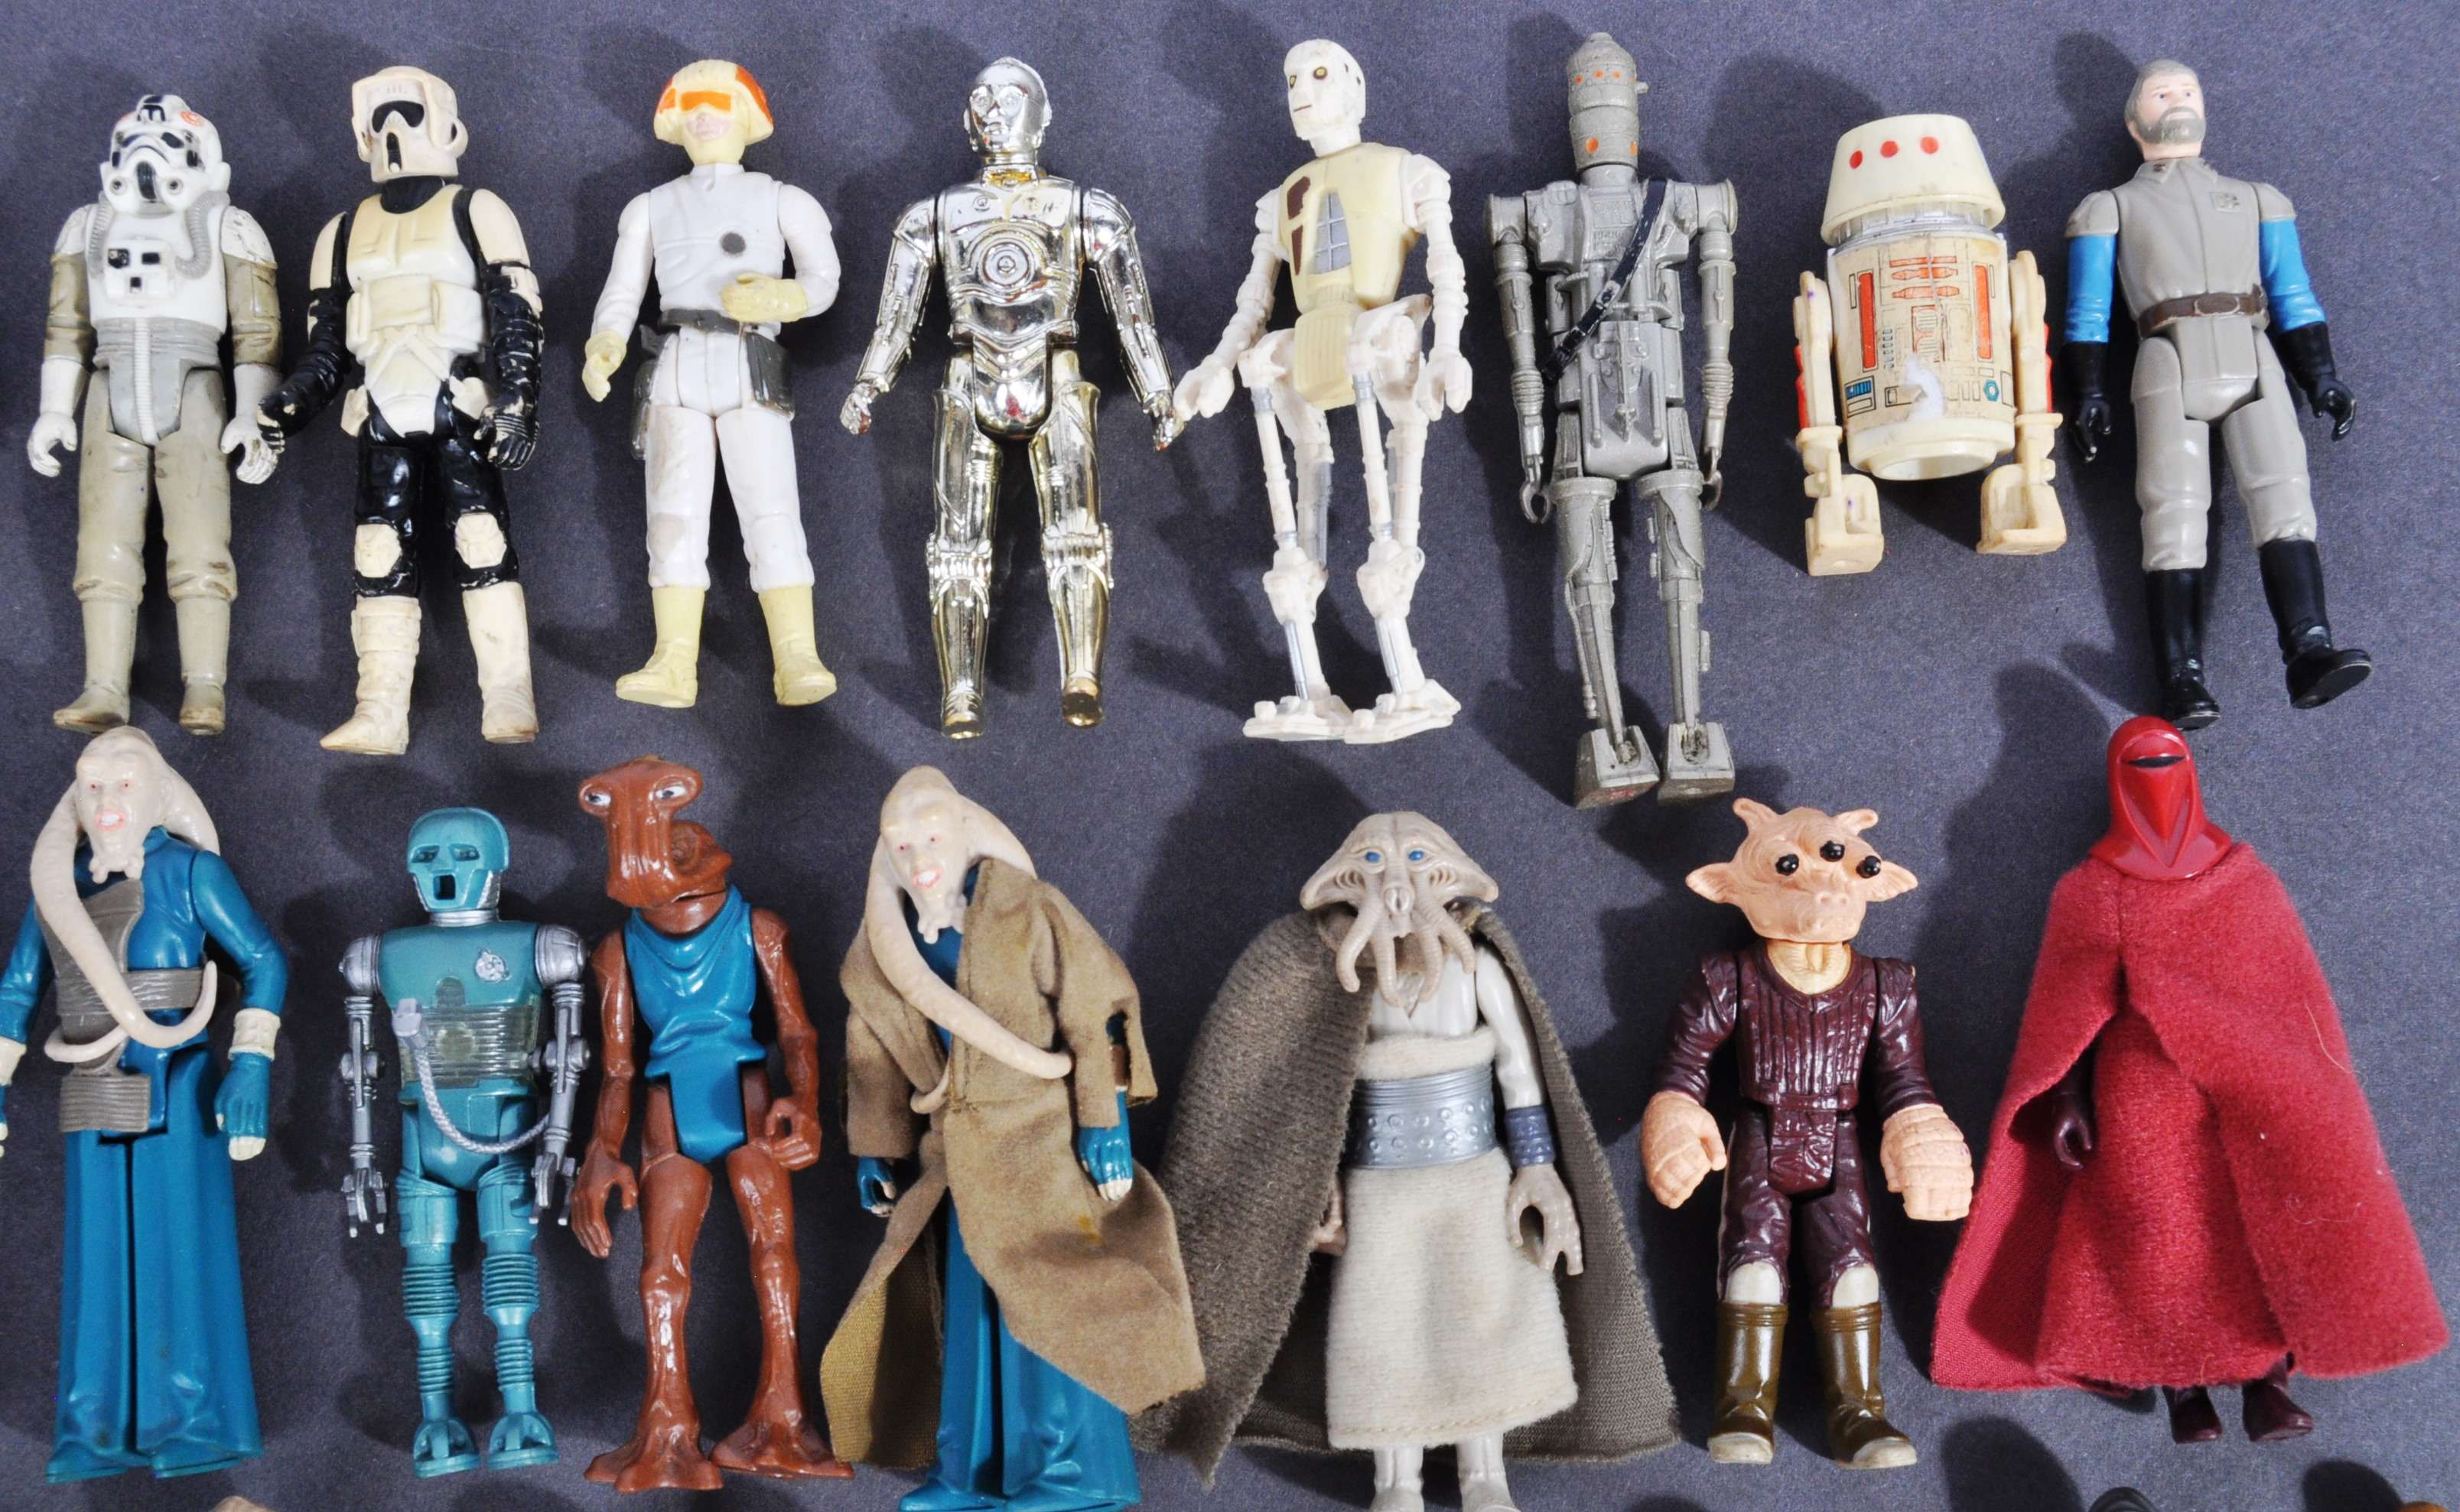 STAR WARS - COLLECTION OF VINTAGE KENNER / PALITOY ACTION FIGURES - Image 2 of 5